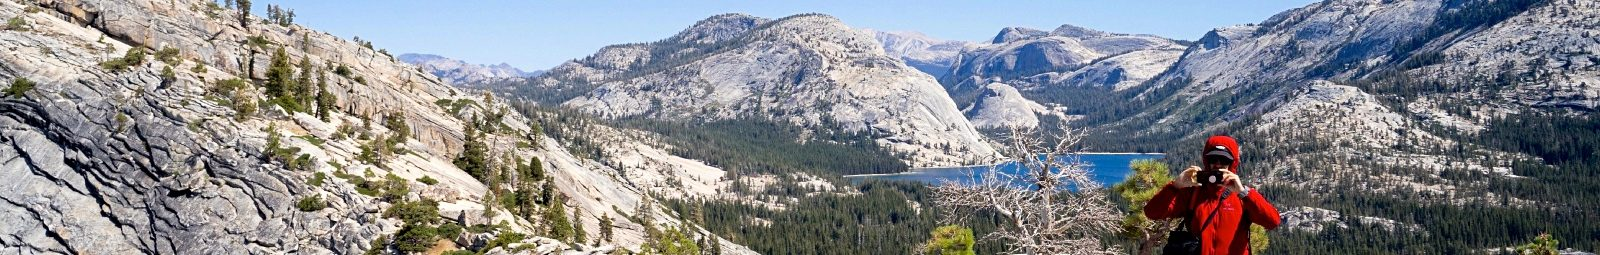 Guided Yosemite Hiking Tour